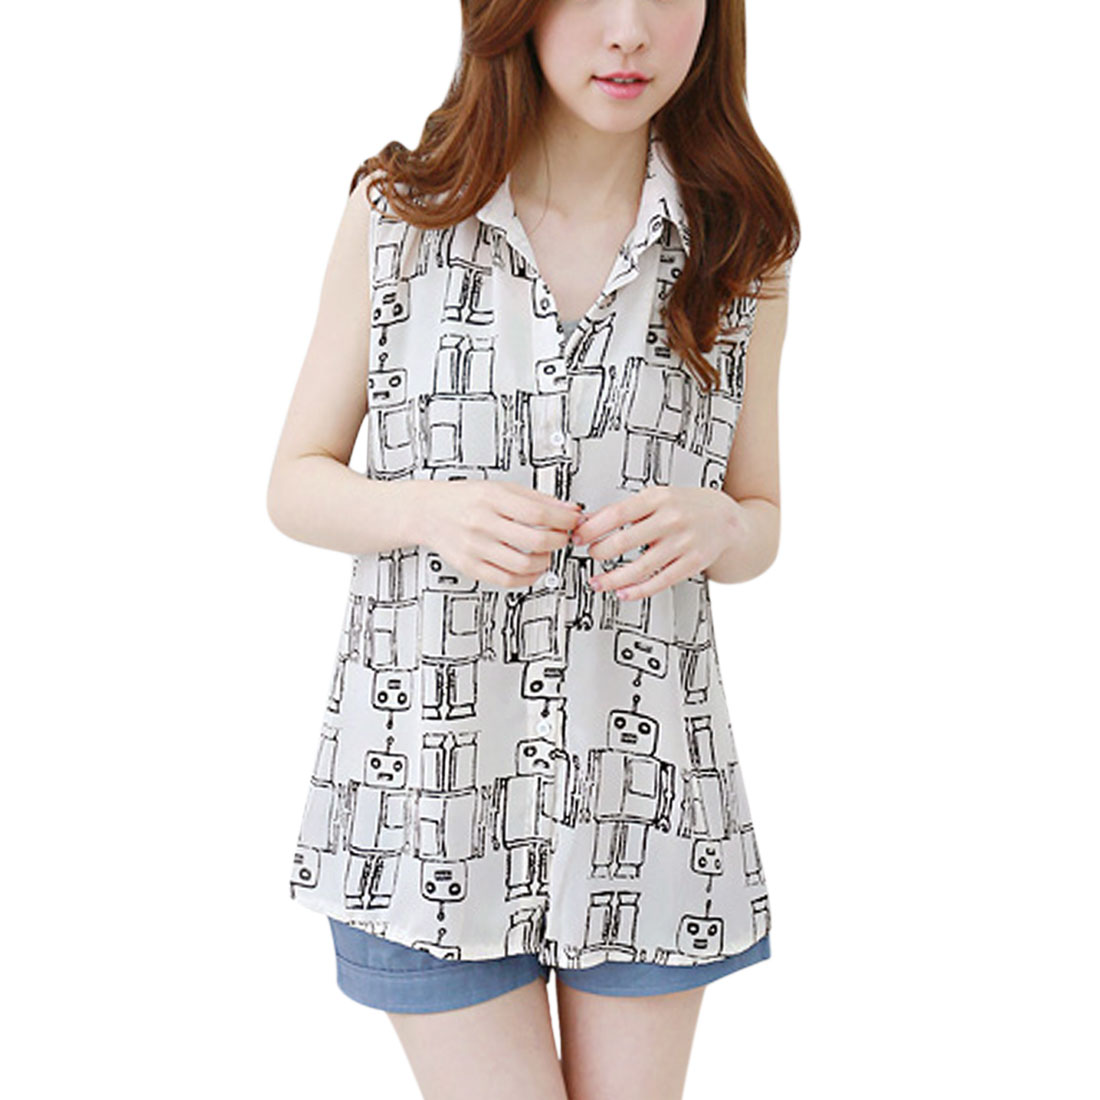 Women's Point Collar Sleeveless Robot Prints Casual Shirts White (Size S / 4)